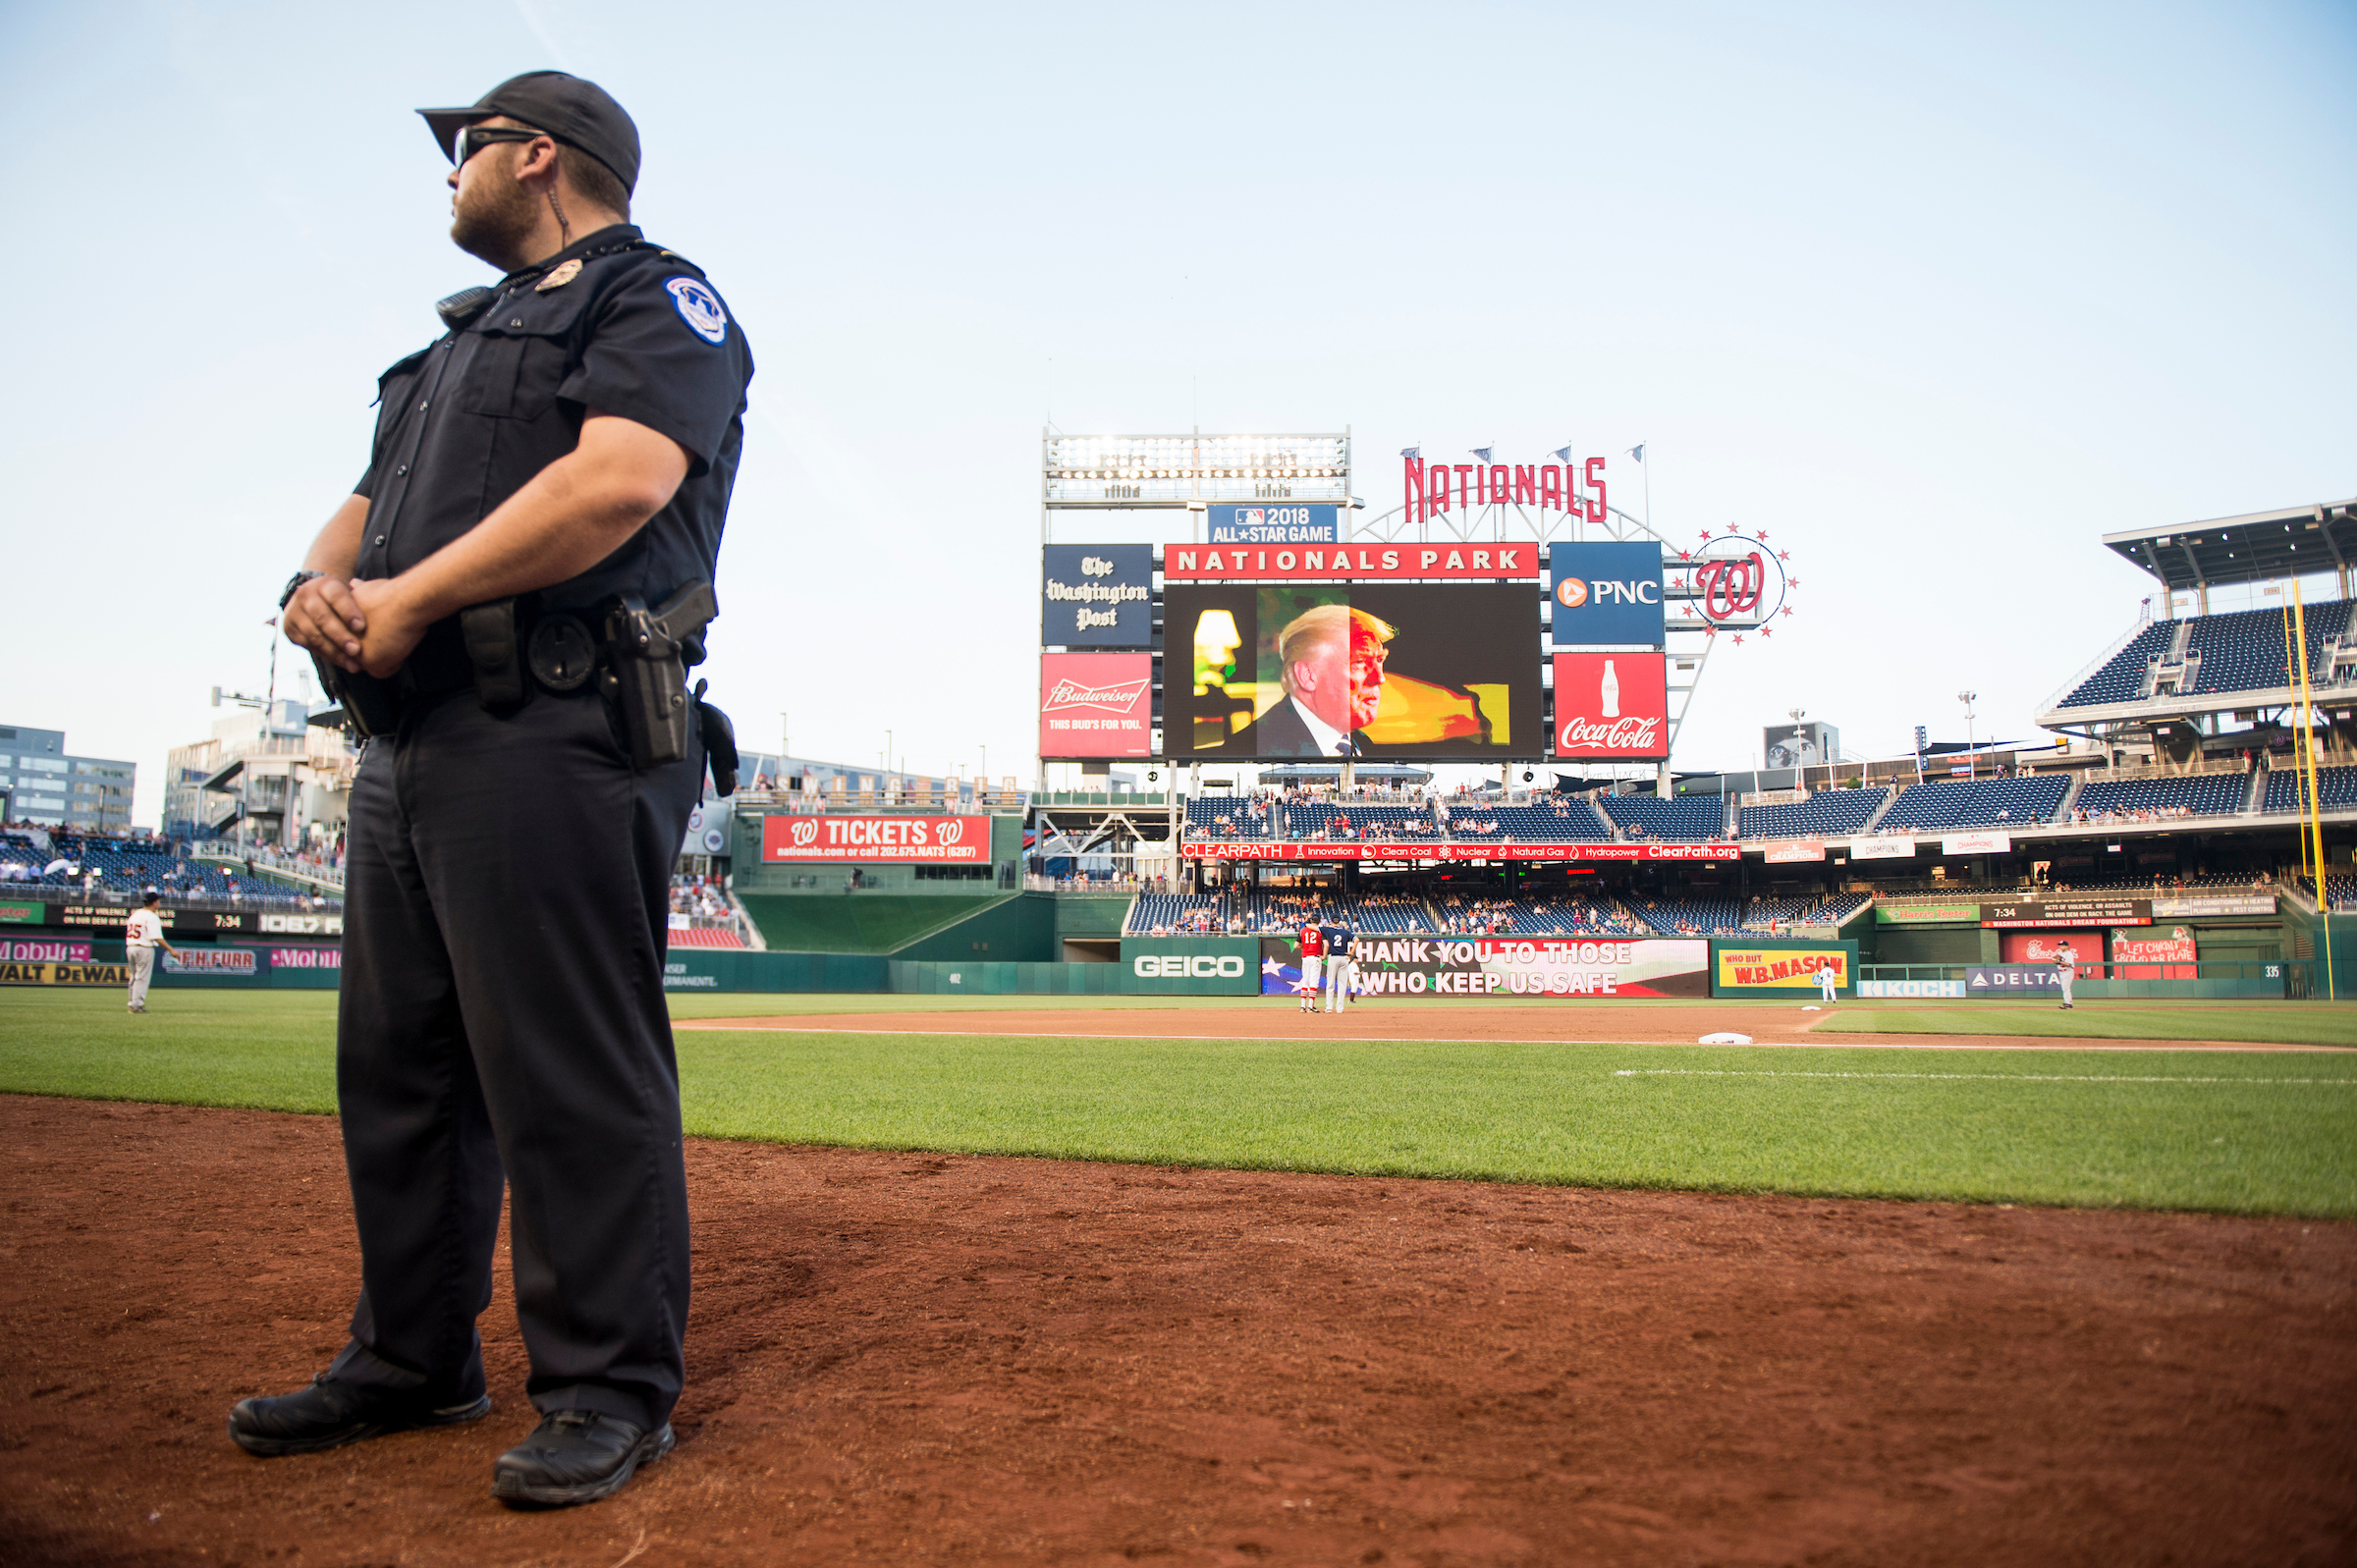 UNITED STATES - JUNE 15: A Capitol Police officer guards the field as President Donald Trump's video message to the crowd plays on the scoreboard during the annual Congressional Baseball Game at Nationals Park in Washington on Thursday, June 15, 2017. (Photo By Bill Clark/CQ Roll Call)